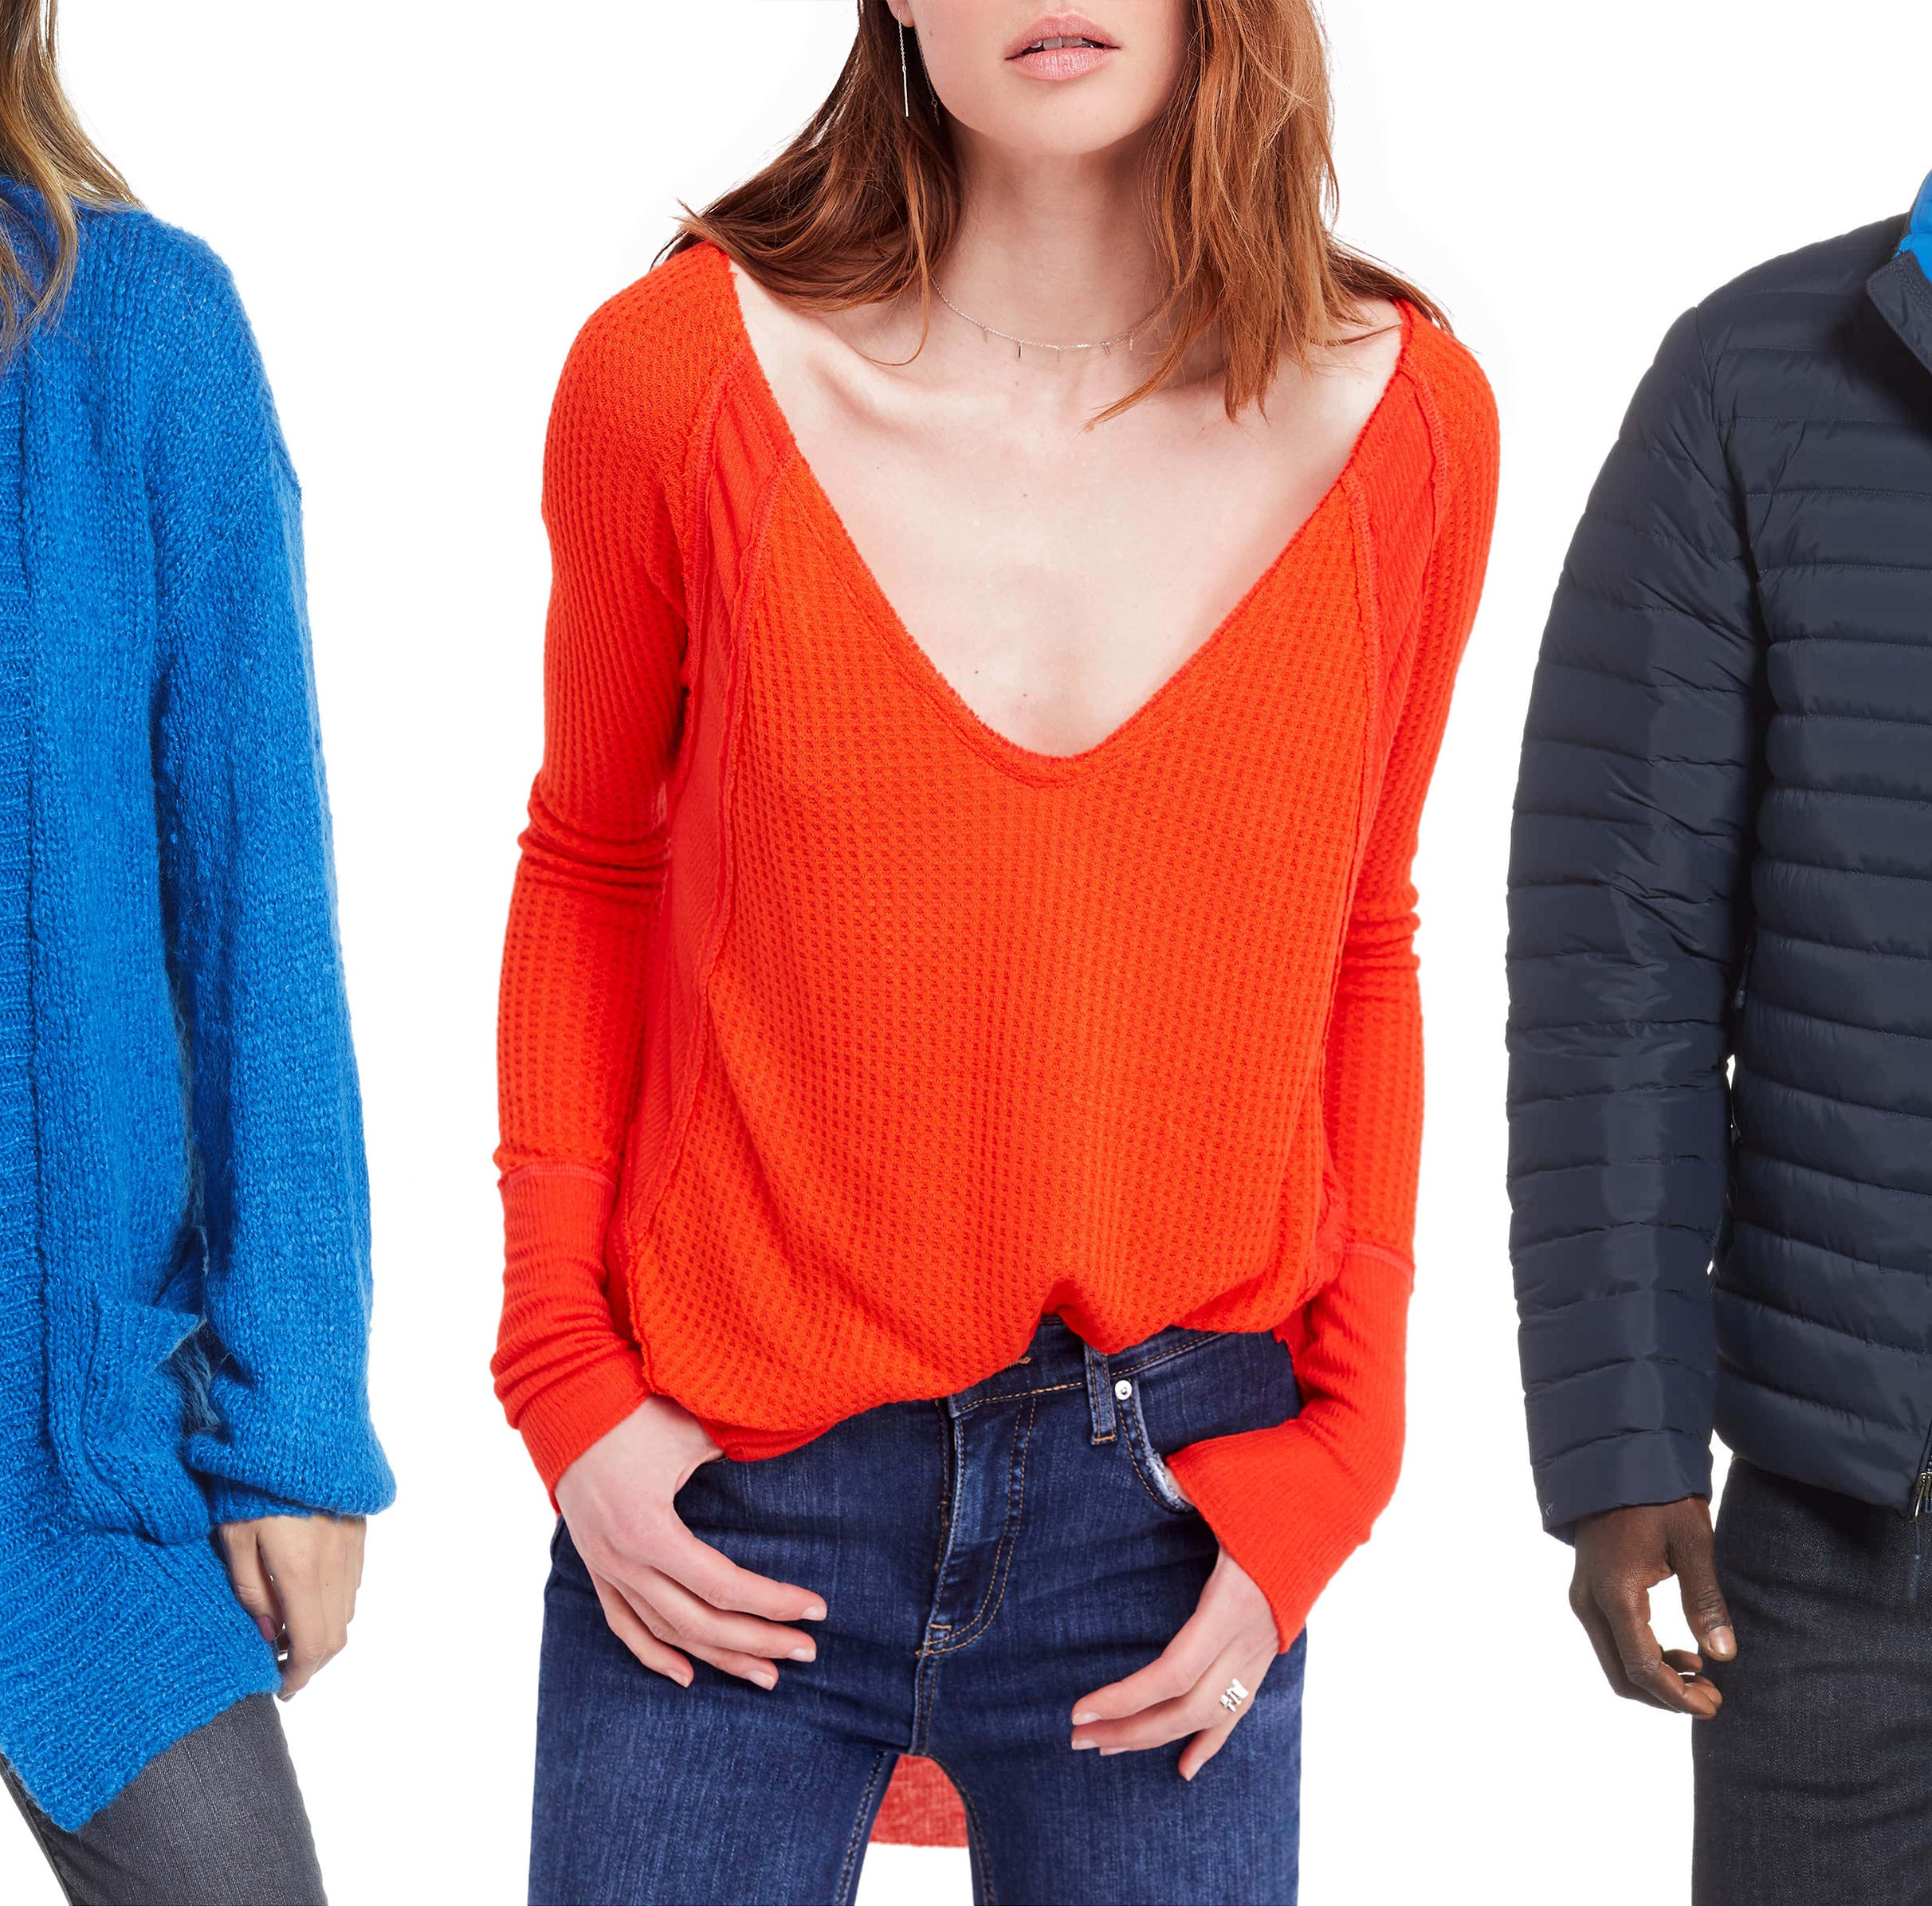 Nordstrom's annual Winter Sale is the perfect time to stock up on cozy sweater, jackets, and more.